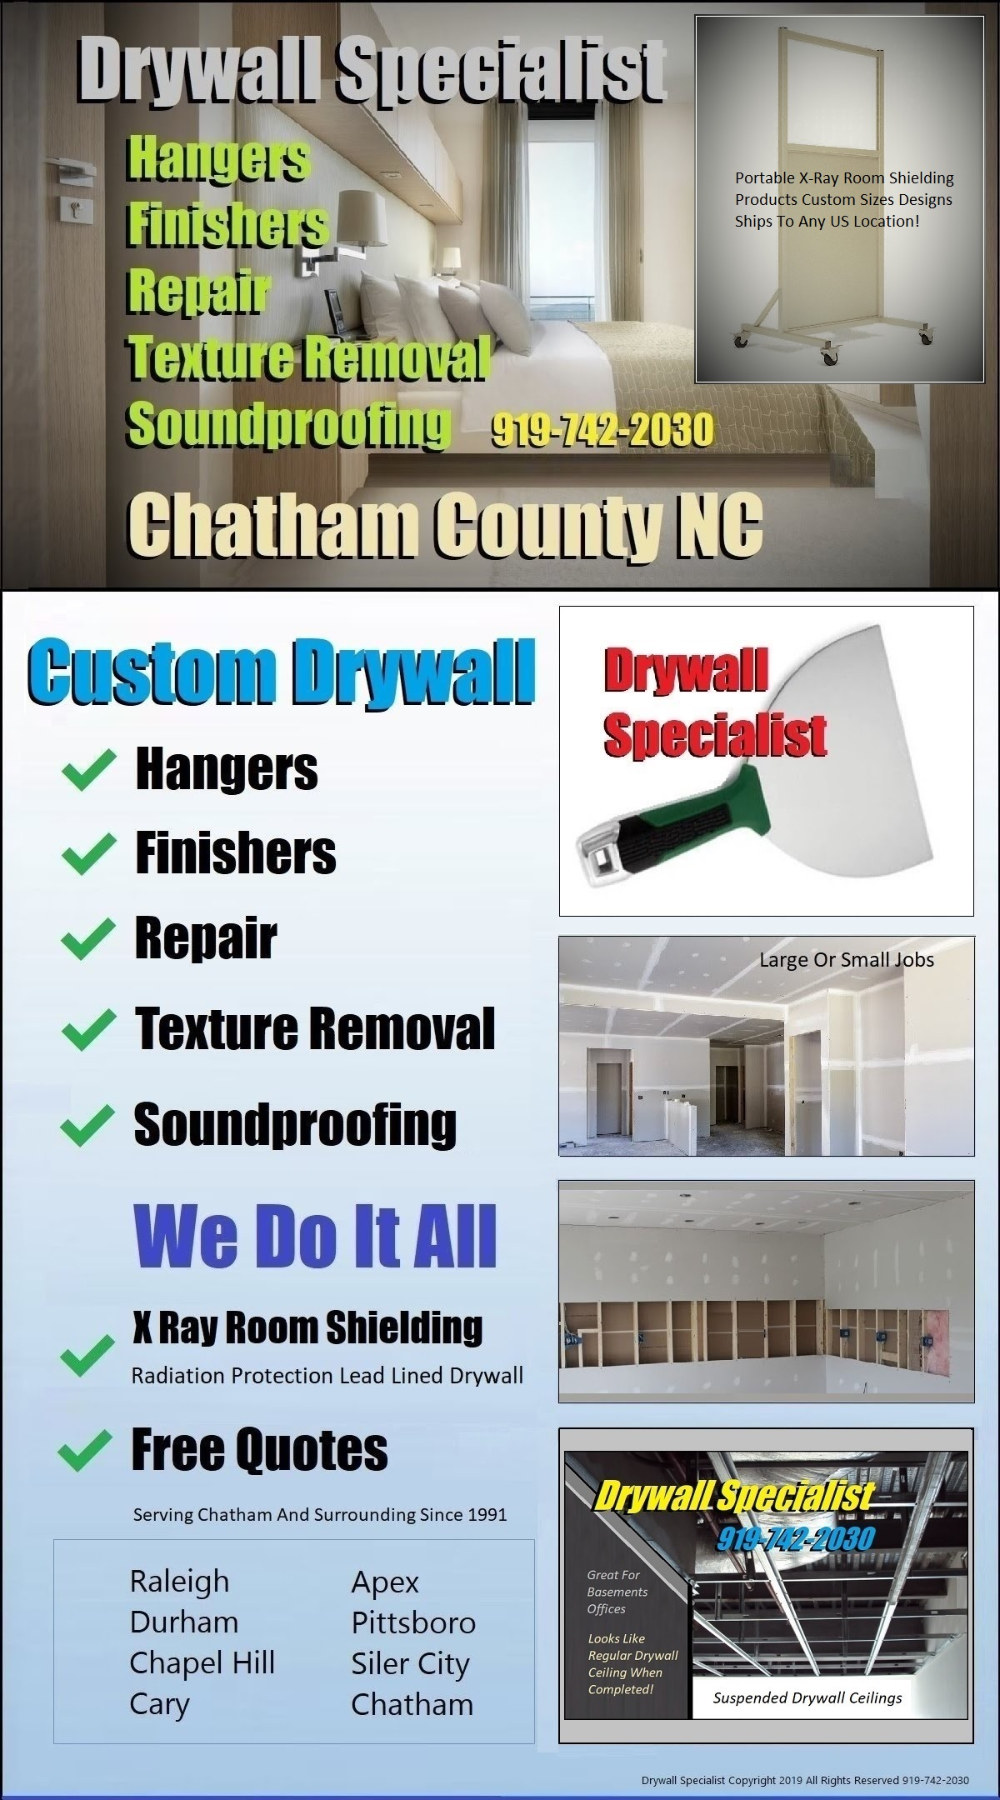 If You Need A Quote To Hang Drywall In Your Home In Pittsboro Call Drywall Specialist For Fast Professional Installa In 2020 Chatham County Drywall Repair Pittsboro